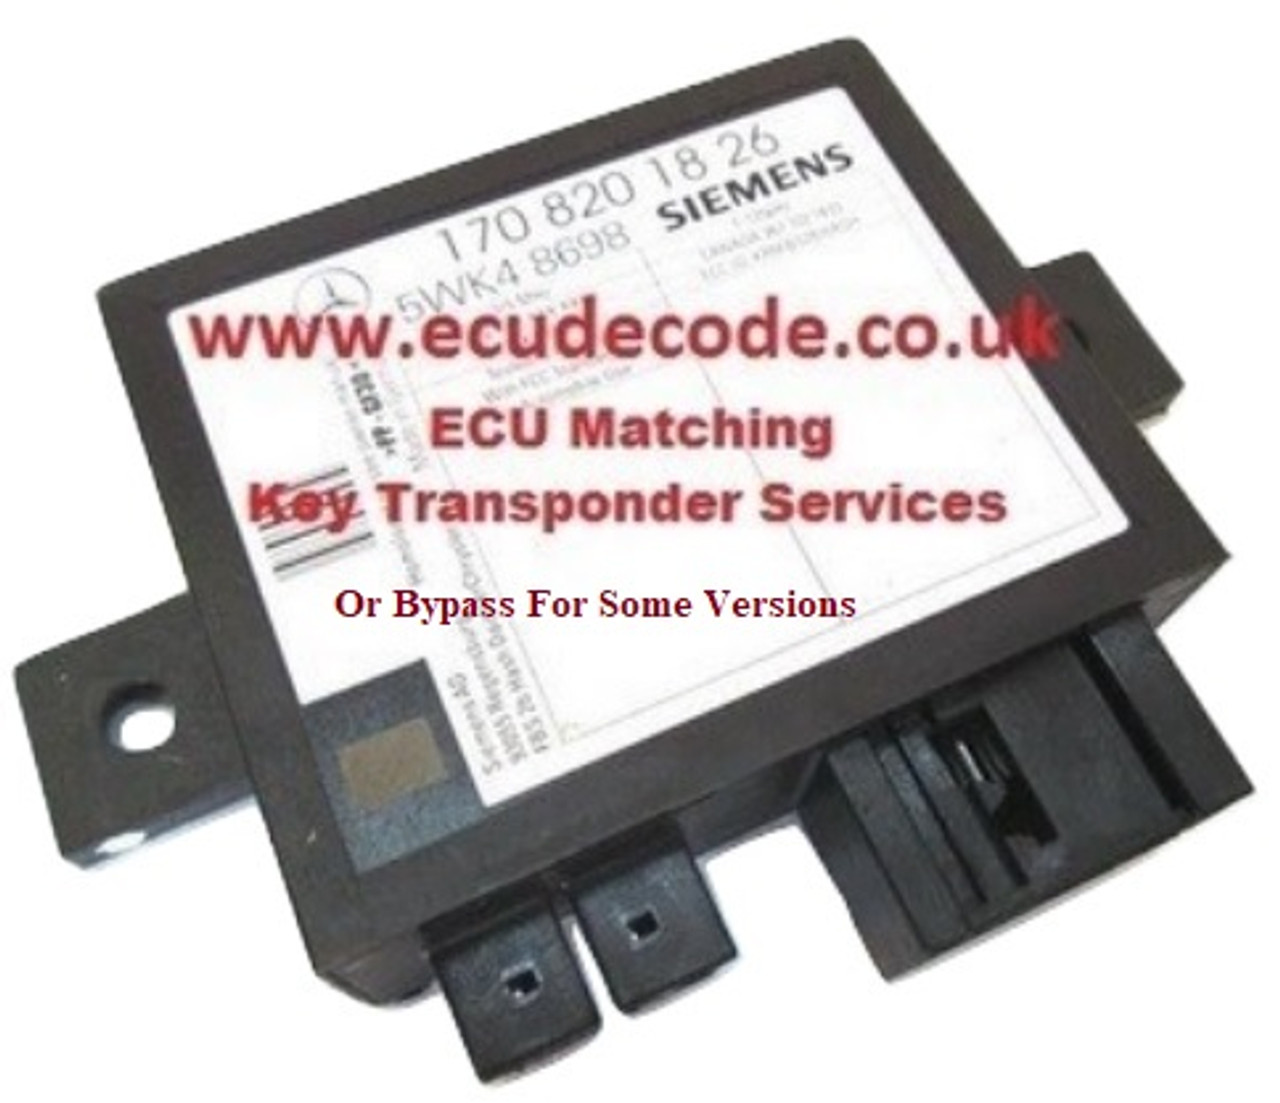 5WK48697 Bypass service for Bosch ME2.8 engine ecu variants.